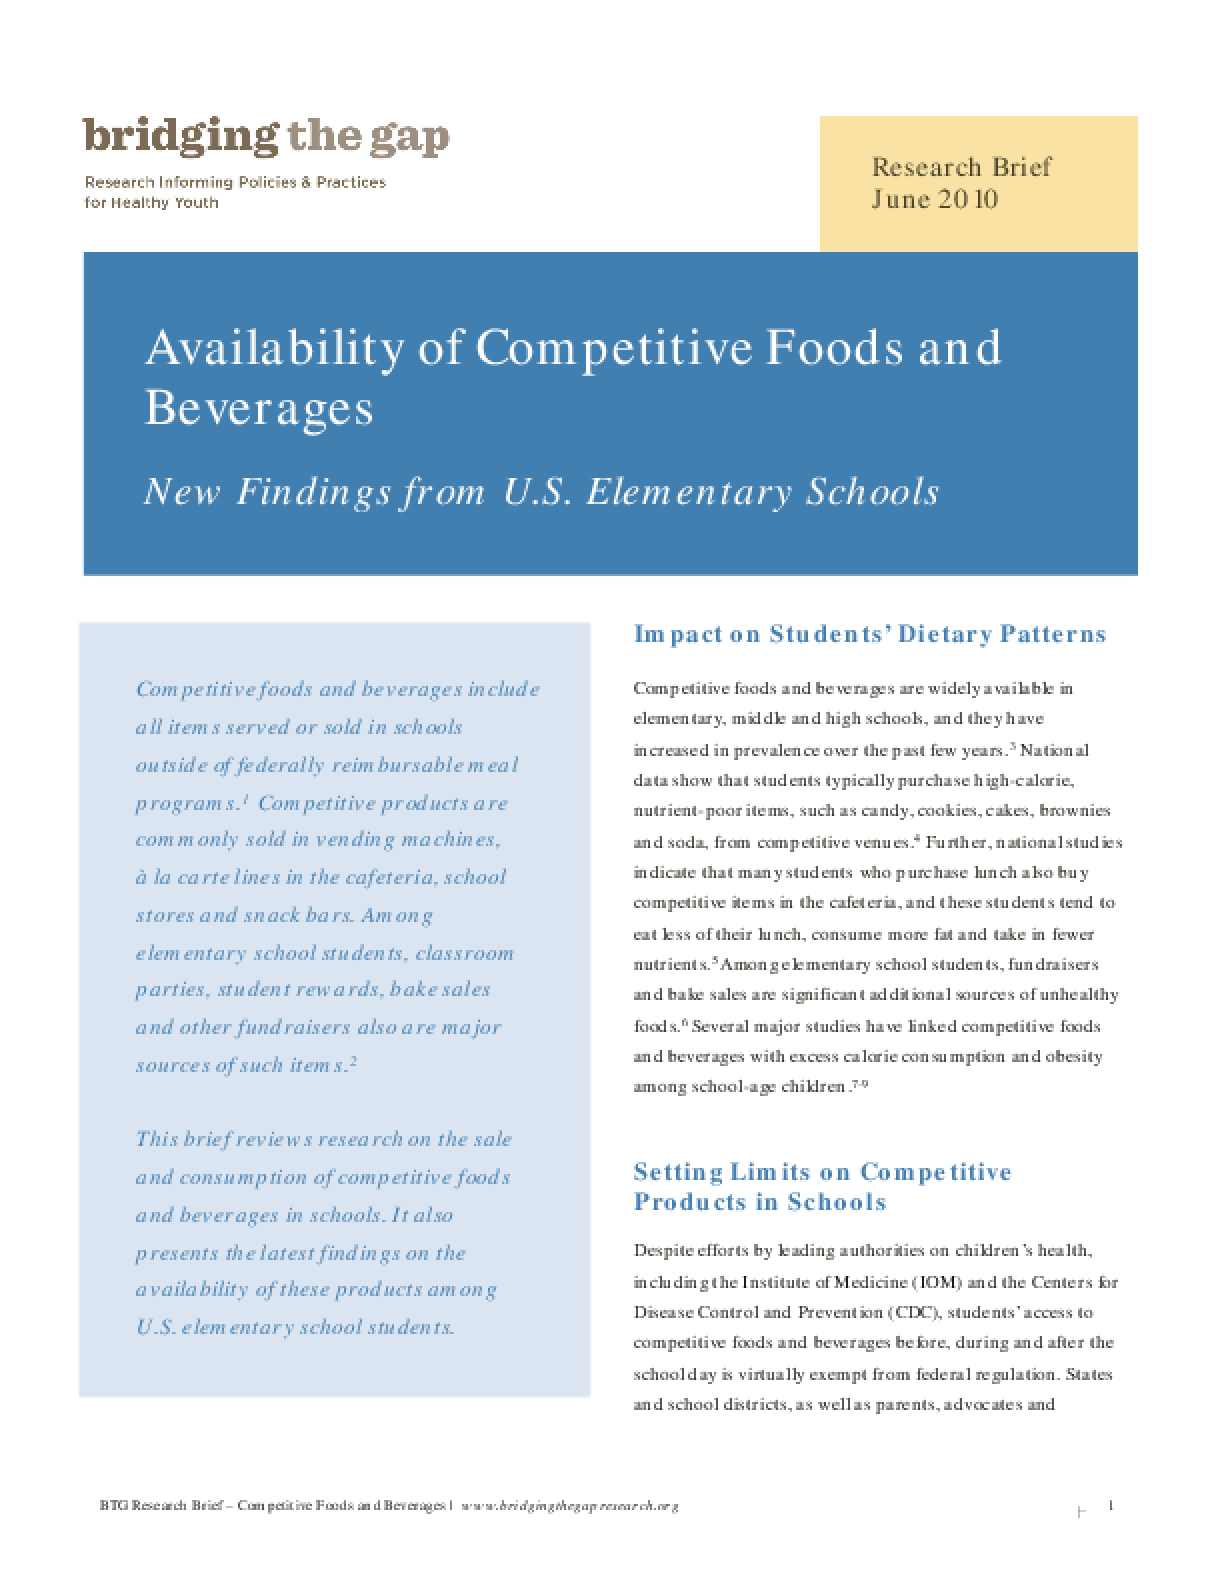 Availability of Competitive Foods and Beverages: New Findings From U.S. Elementary Schools